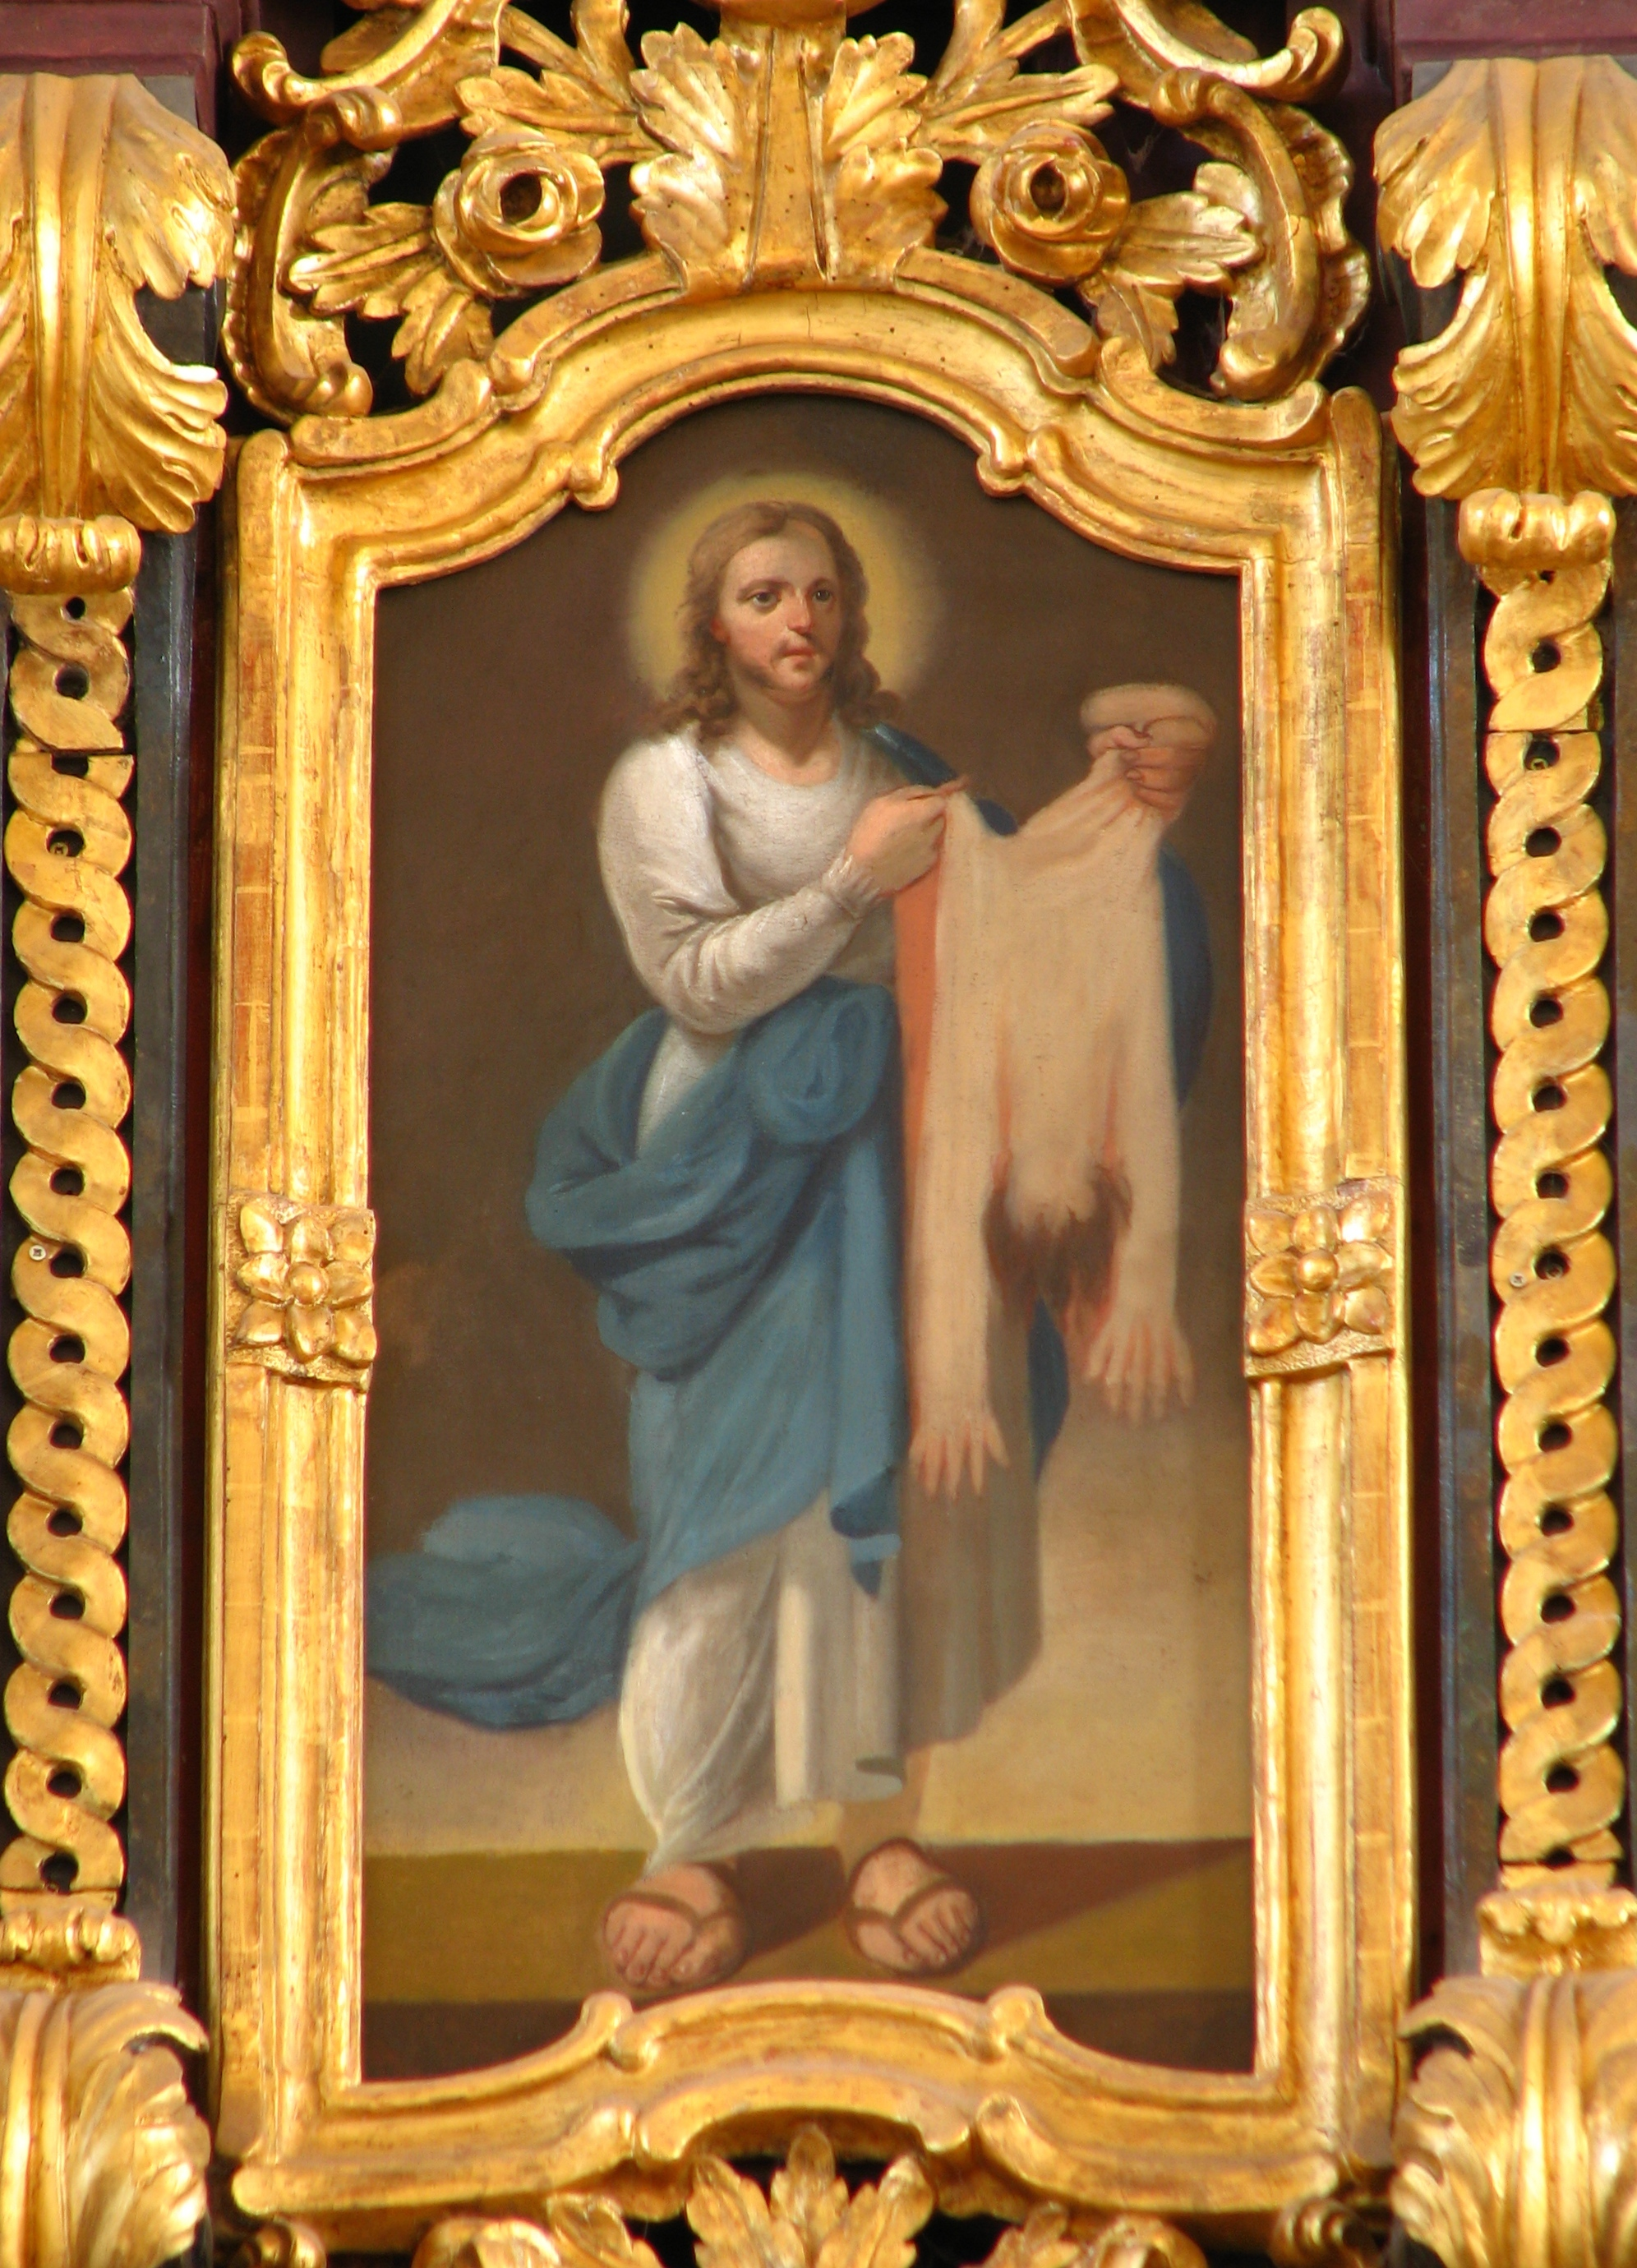 https://i2.wp.com/upload.wikimedia.org/wikipedia/commons/f/f4/Bartholomew_Apostle_Hajdudorog_Frame.jpg